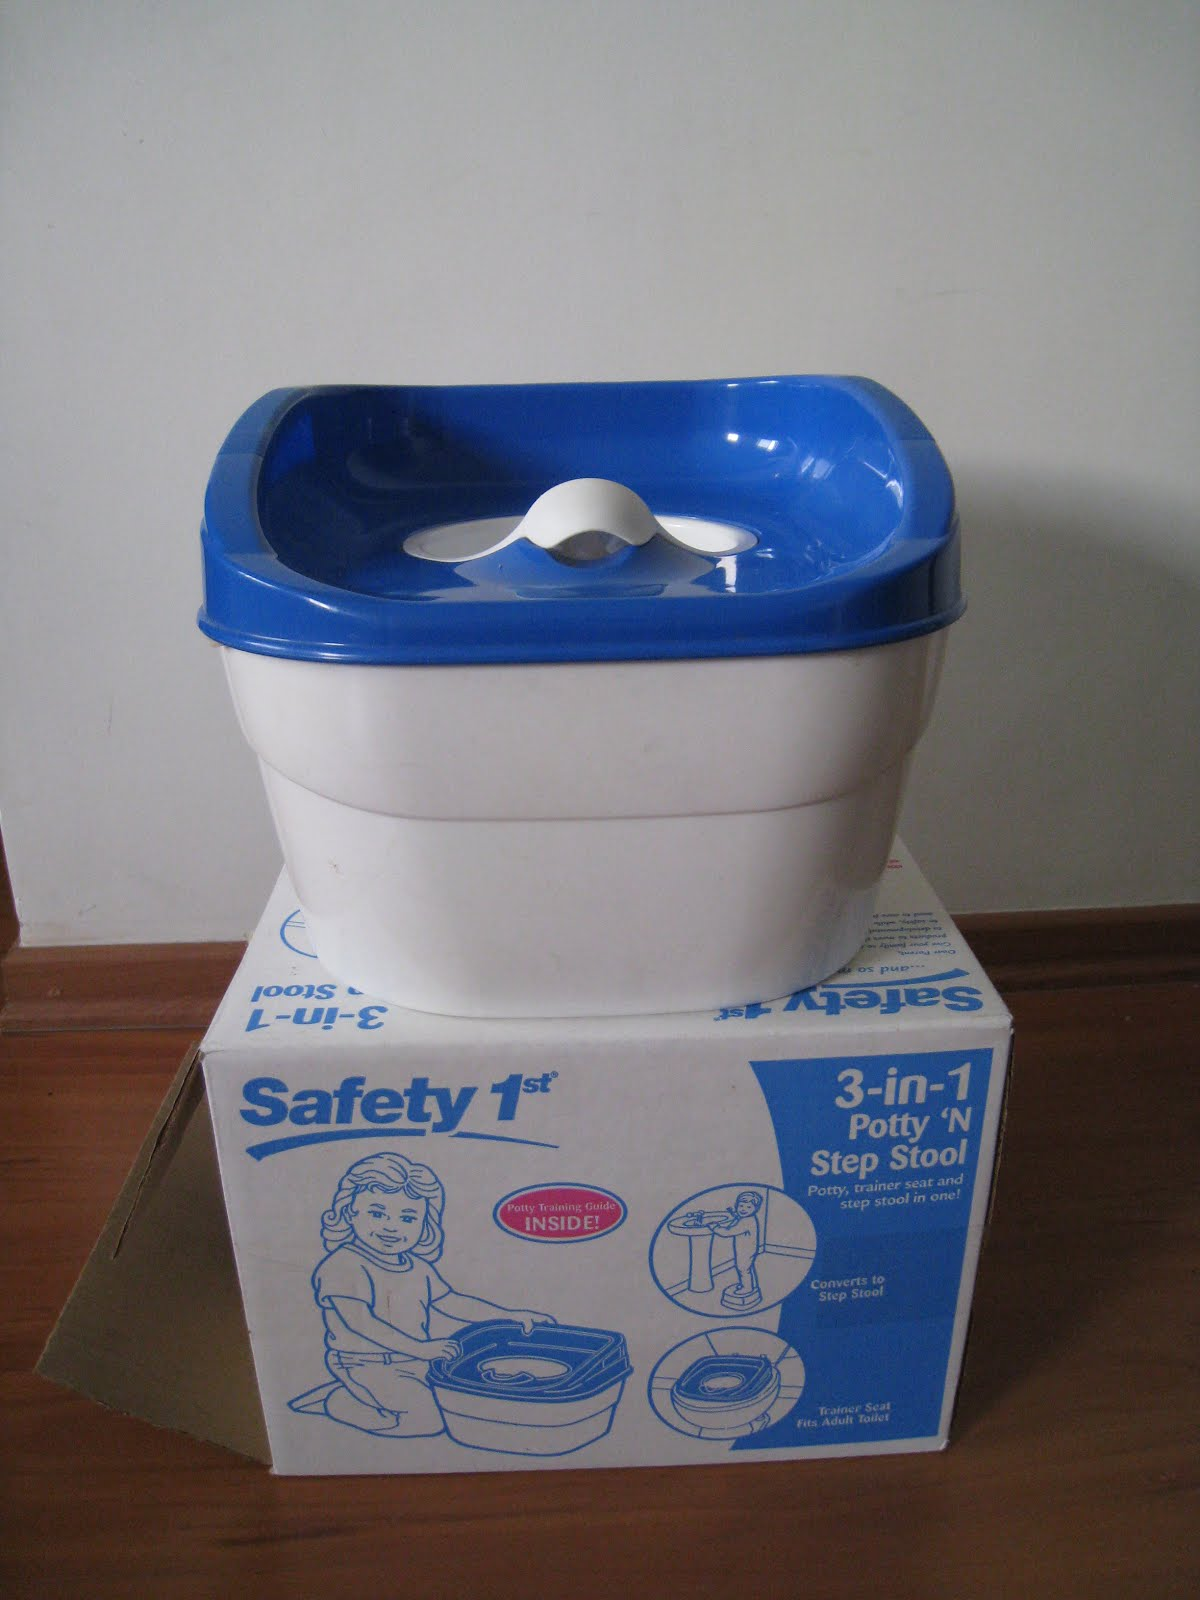 Safety 1st Potty Chair Wayfair Desk Chairs My Zakka Shop Used 3 In 1 N Step Stool